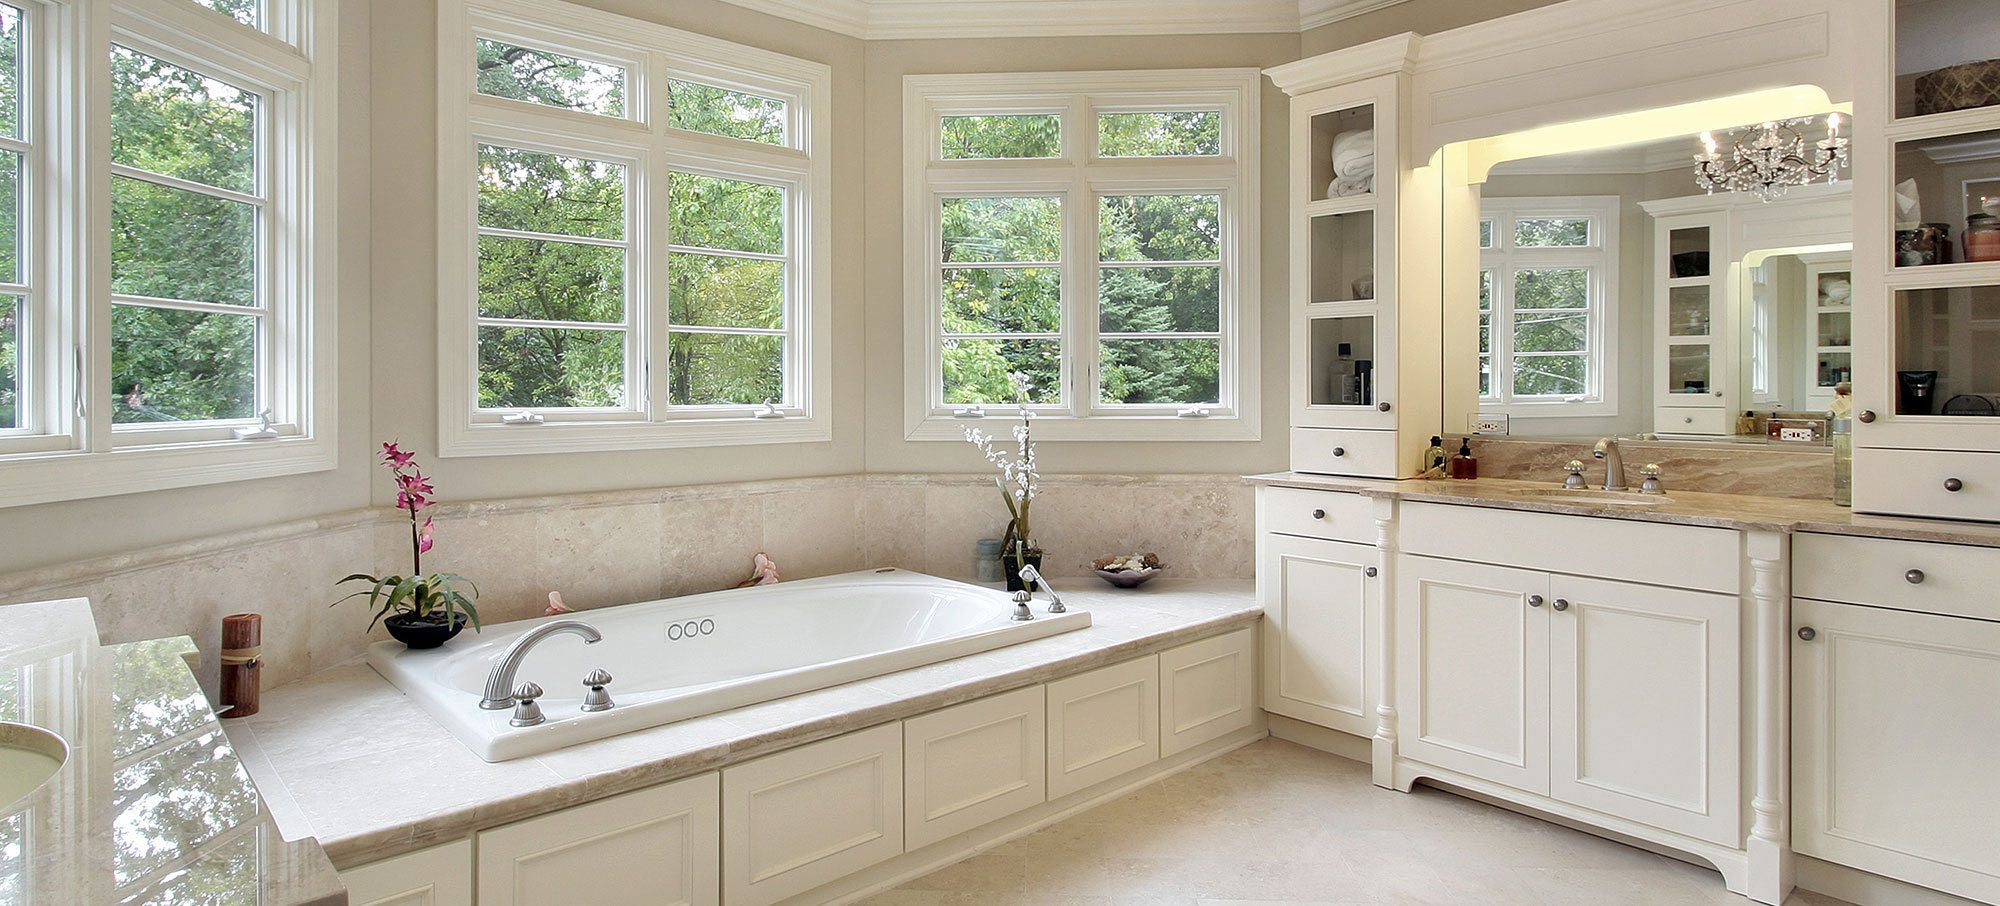 Classic bathroom with white cabinets